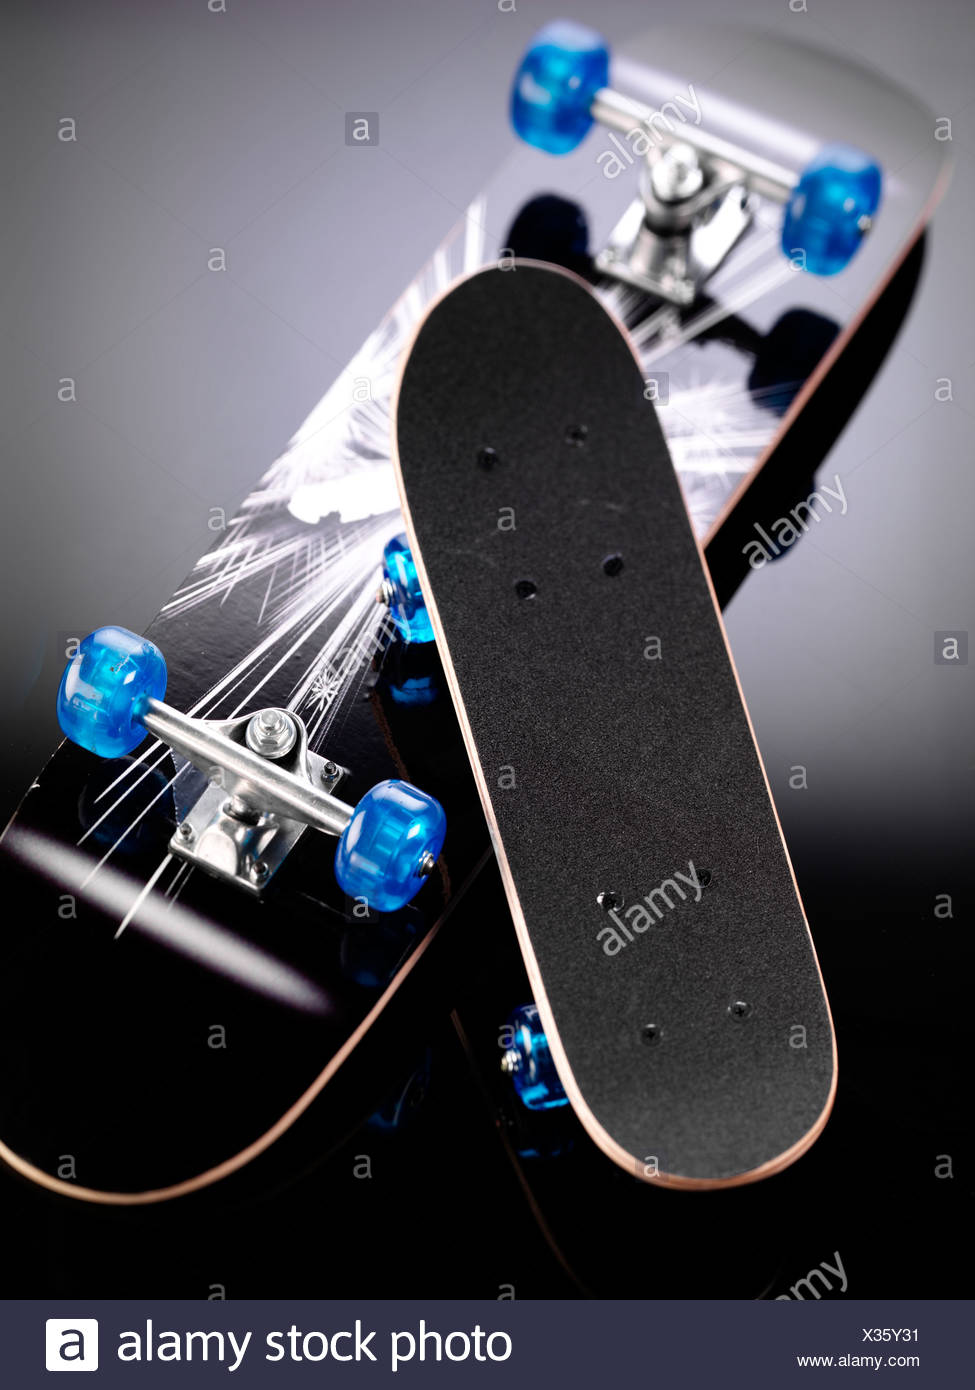 TWO SKATEBOARDS - Stock Image